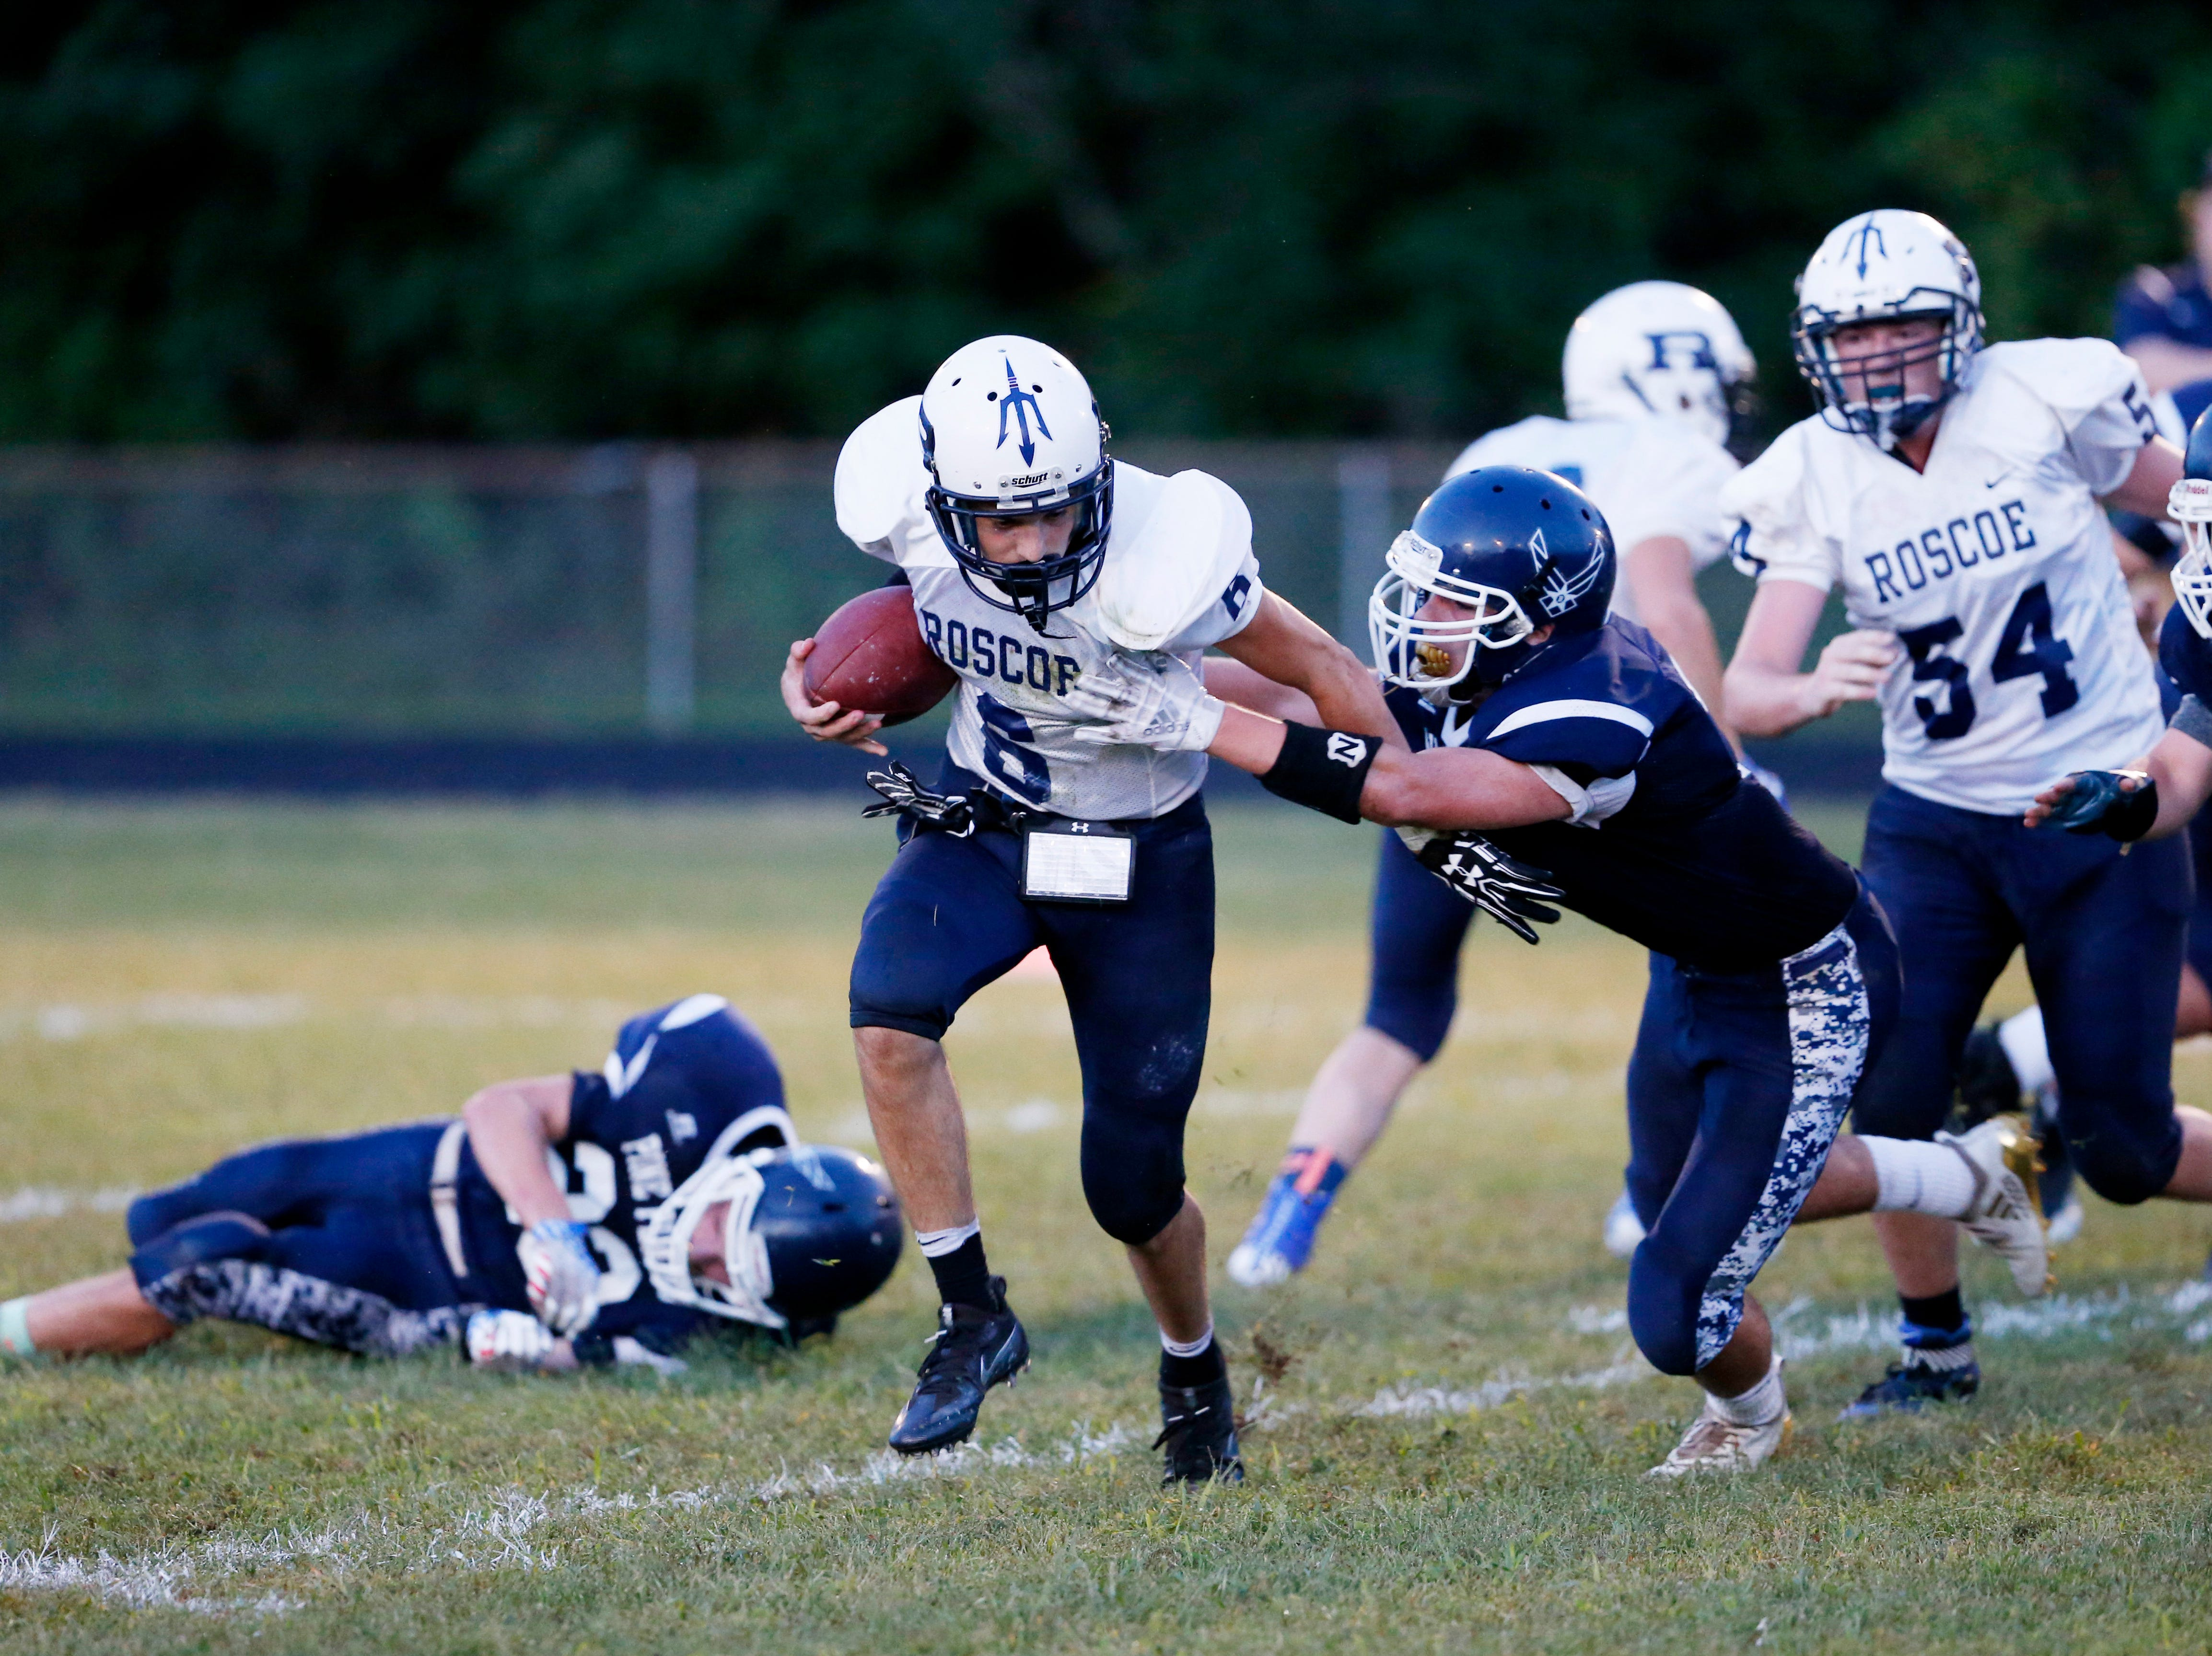 Roscoe's Erick Hill attempts to break free from Pine Plains' Evan Proper during Friday's game at Stissing Mountain High School on September 7, 2018.